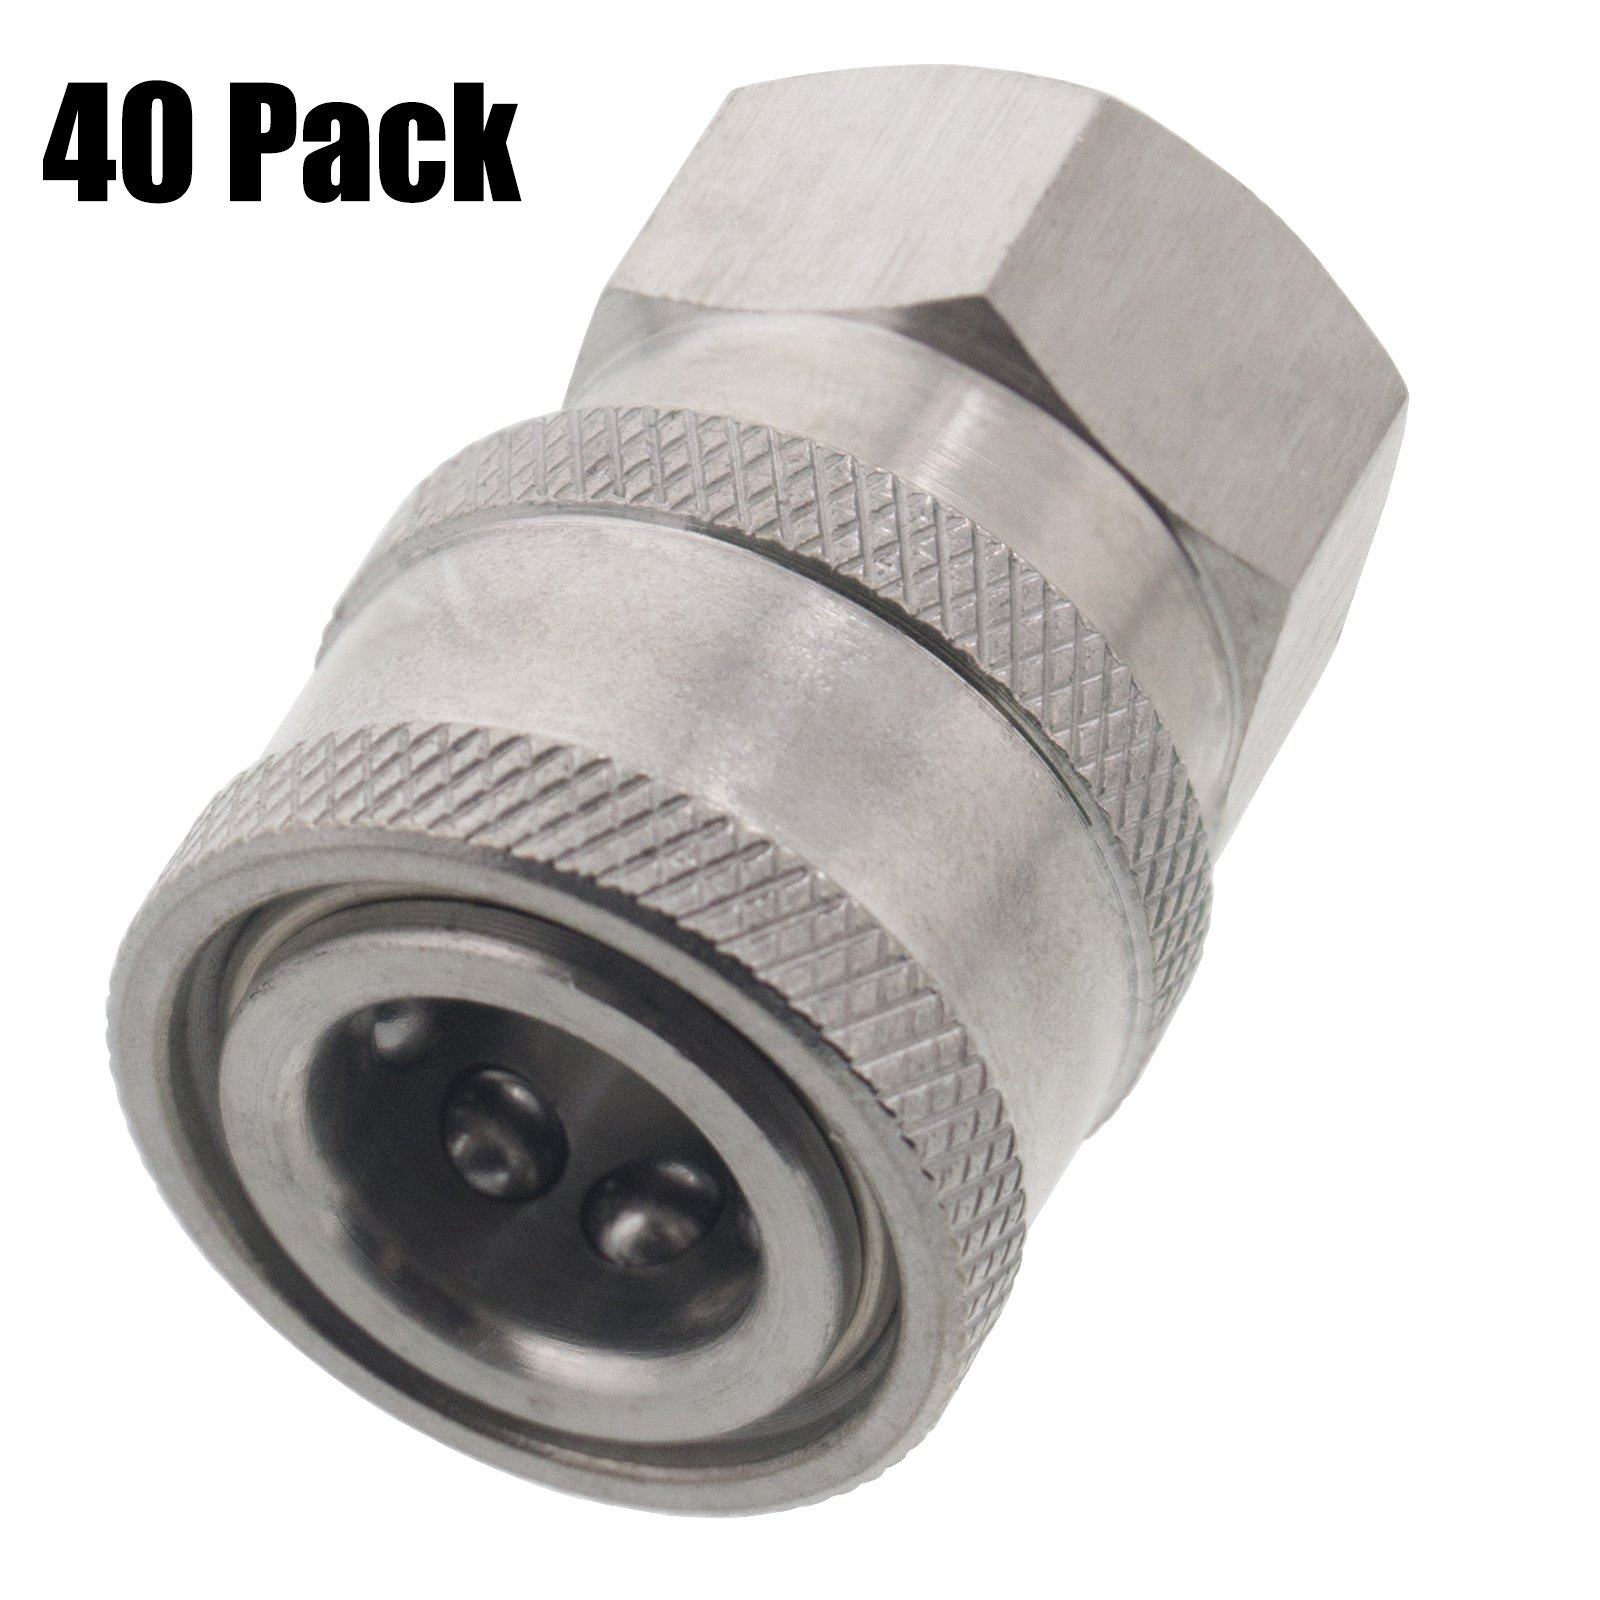 Erie Tools 40 Pressure Washer 1/4in. Female NPT to Quick Connect Socket Stainless Steel Coupler High Temp 5000 PSI 10.5 GPM